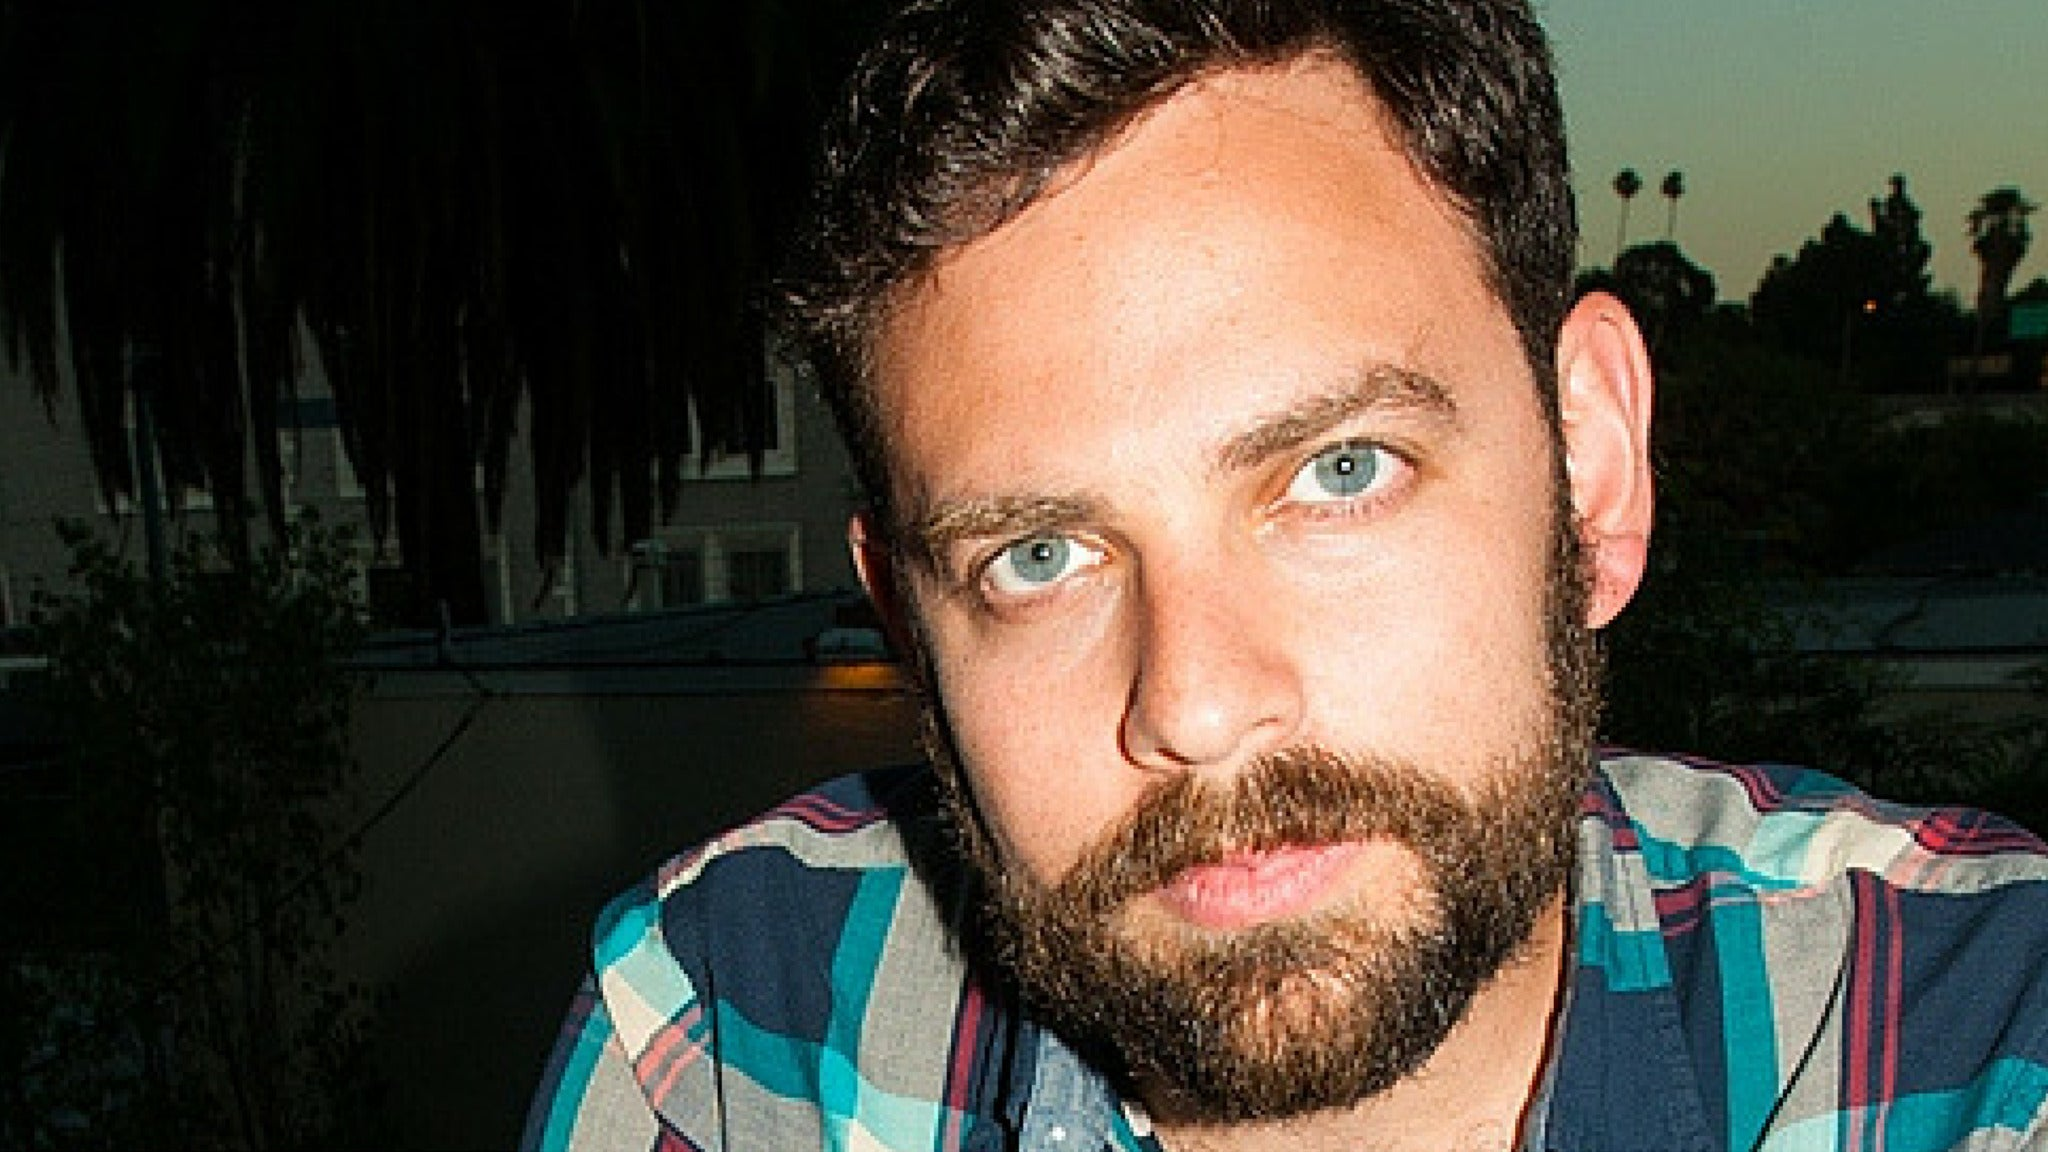 Barry Rothbart at Irvine Improv - Irvine, CA 92618